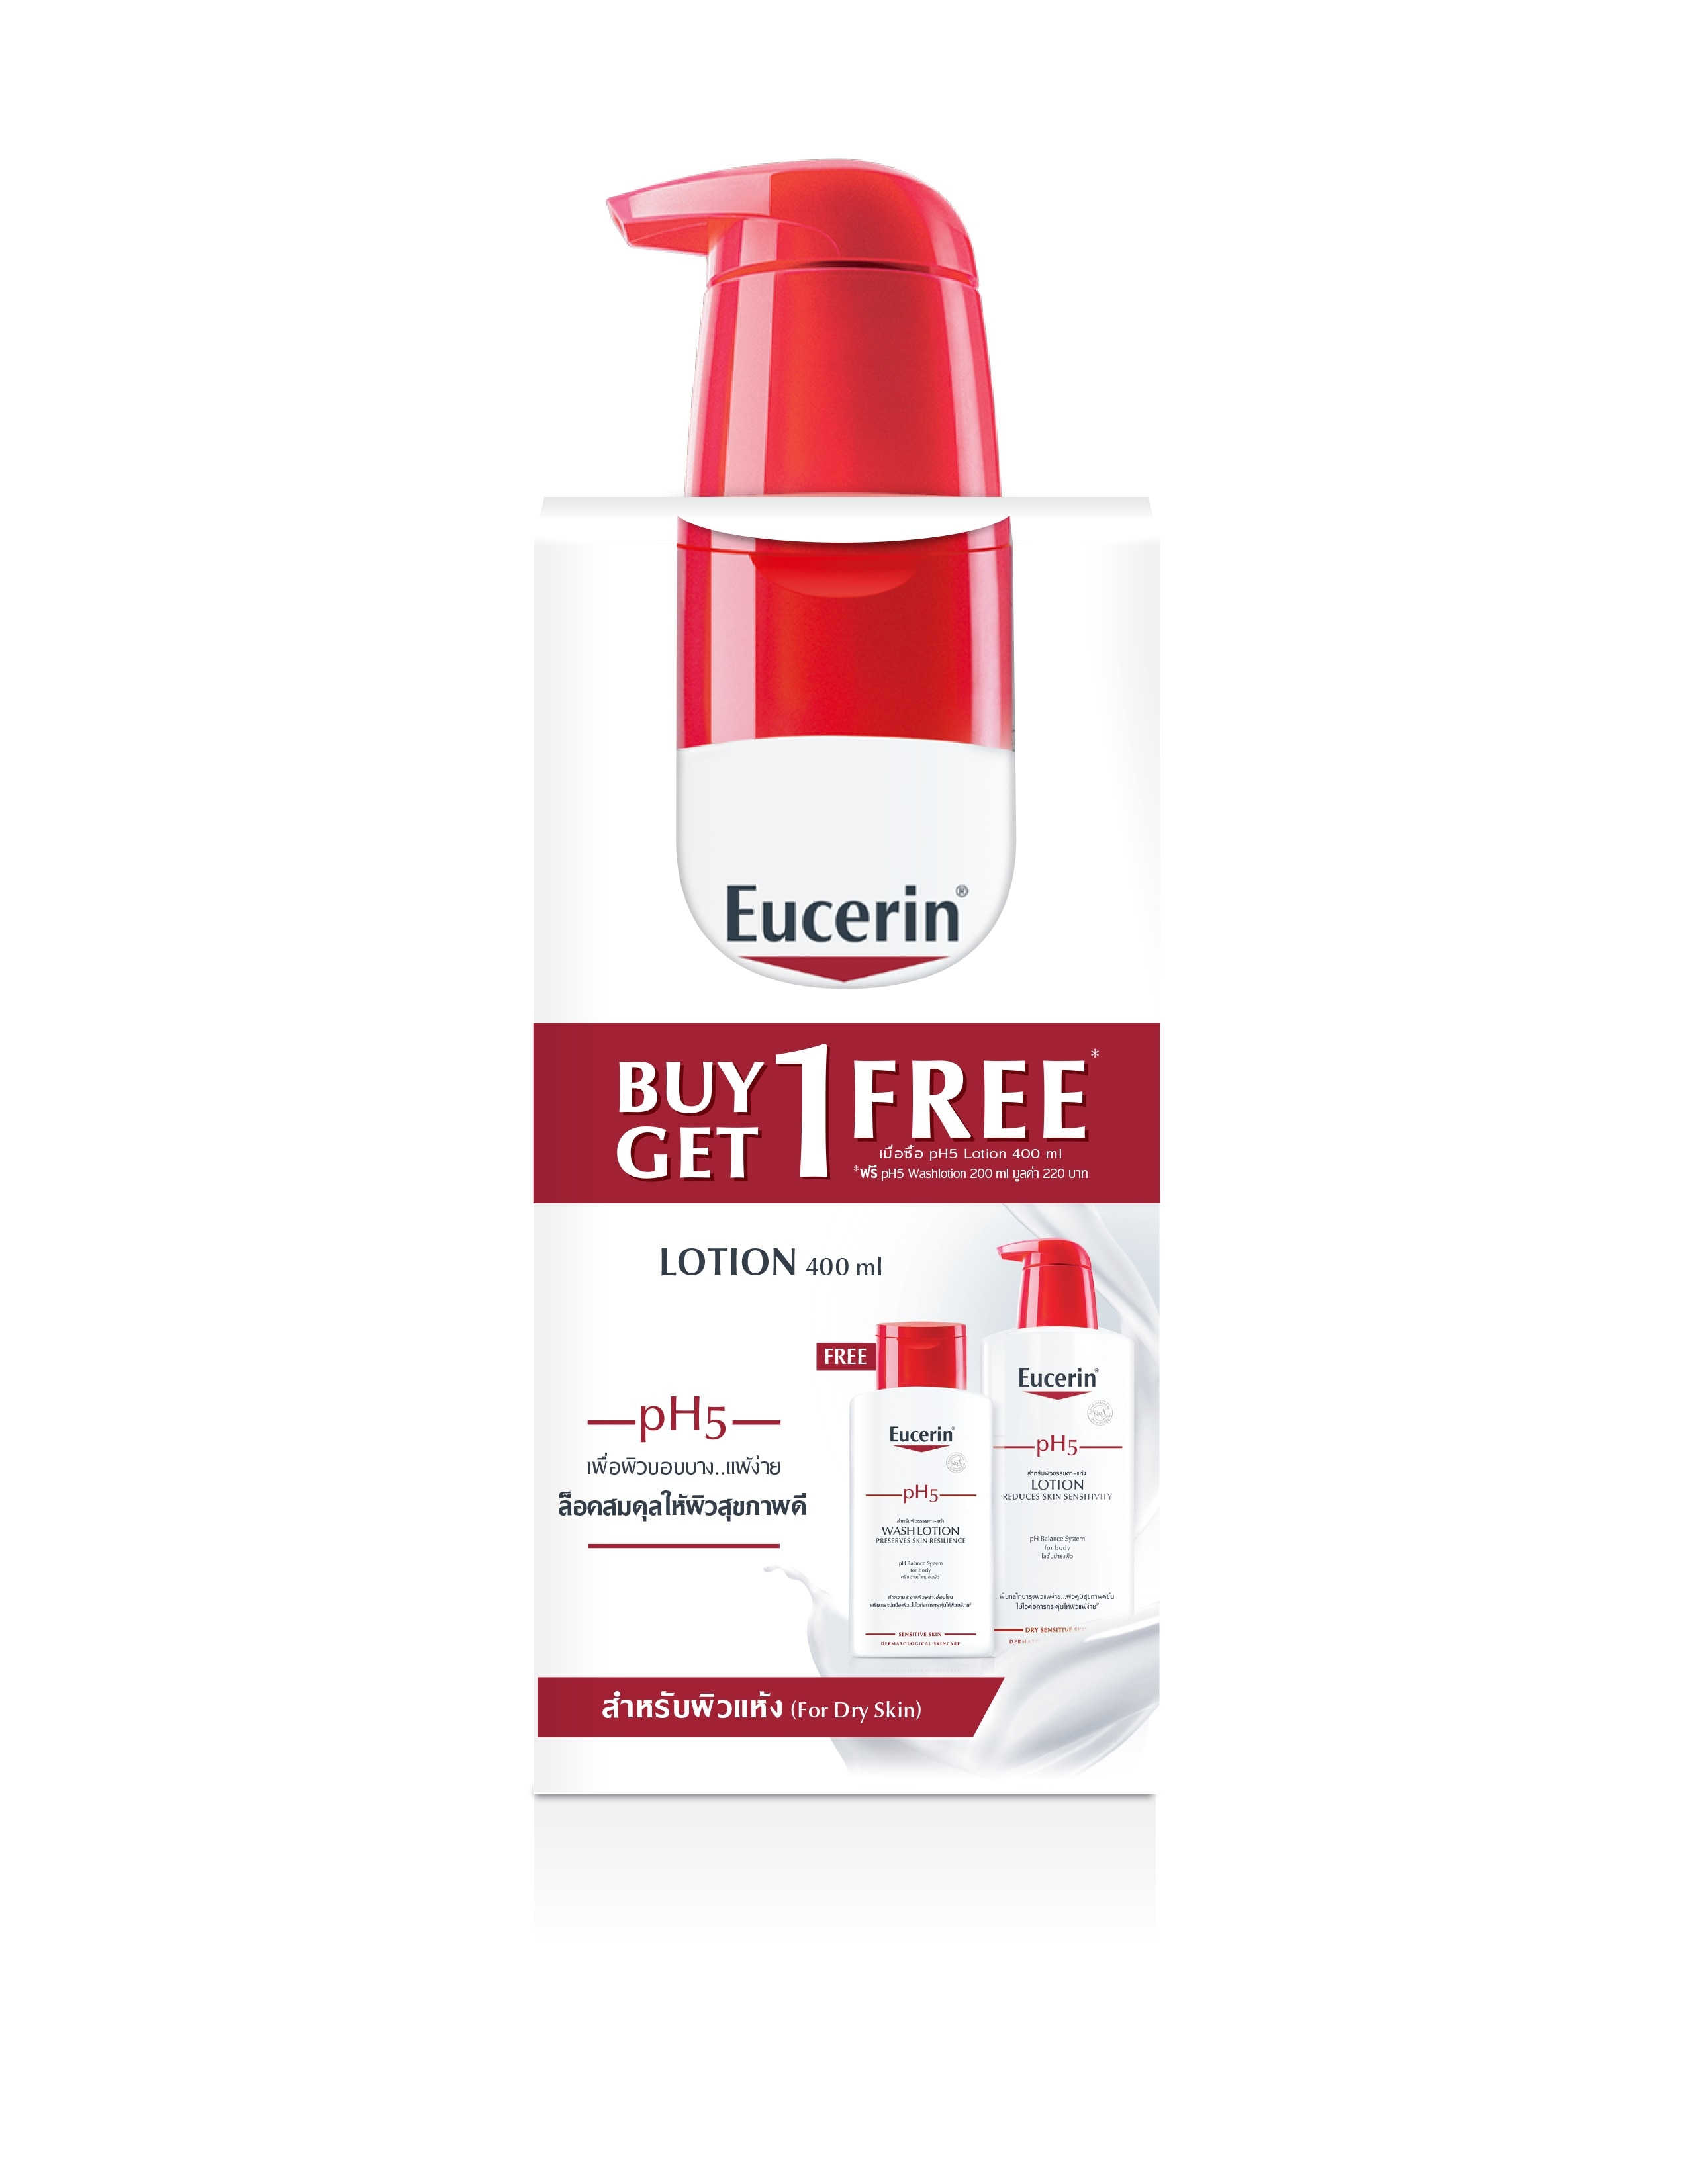 Eucerin pH5 Lotion 400ml  Eucerin pH5 Wash lotion 200ml-293785.jpg